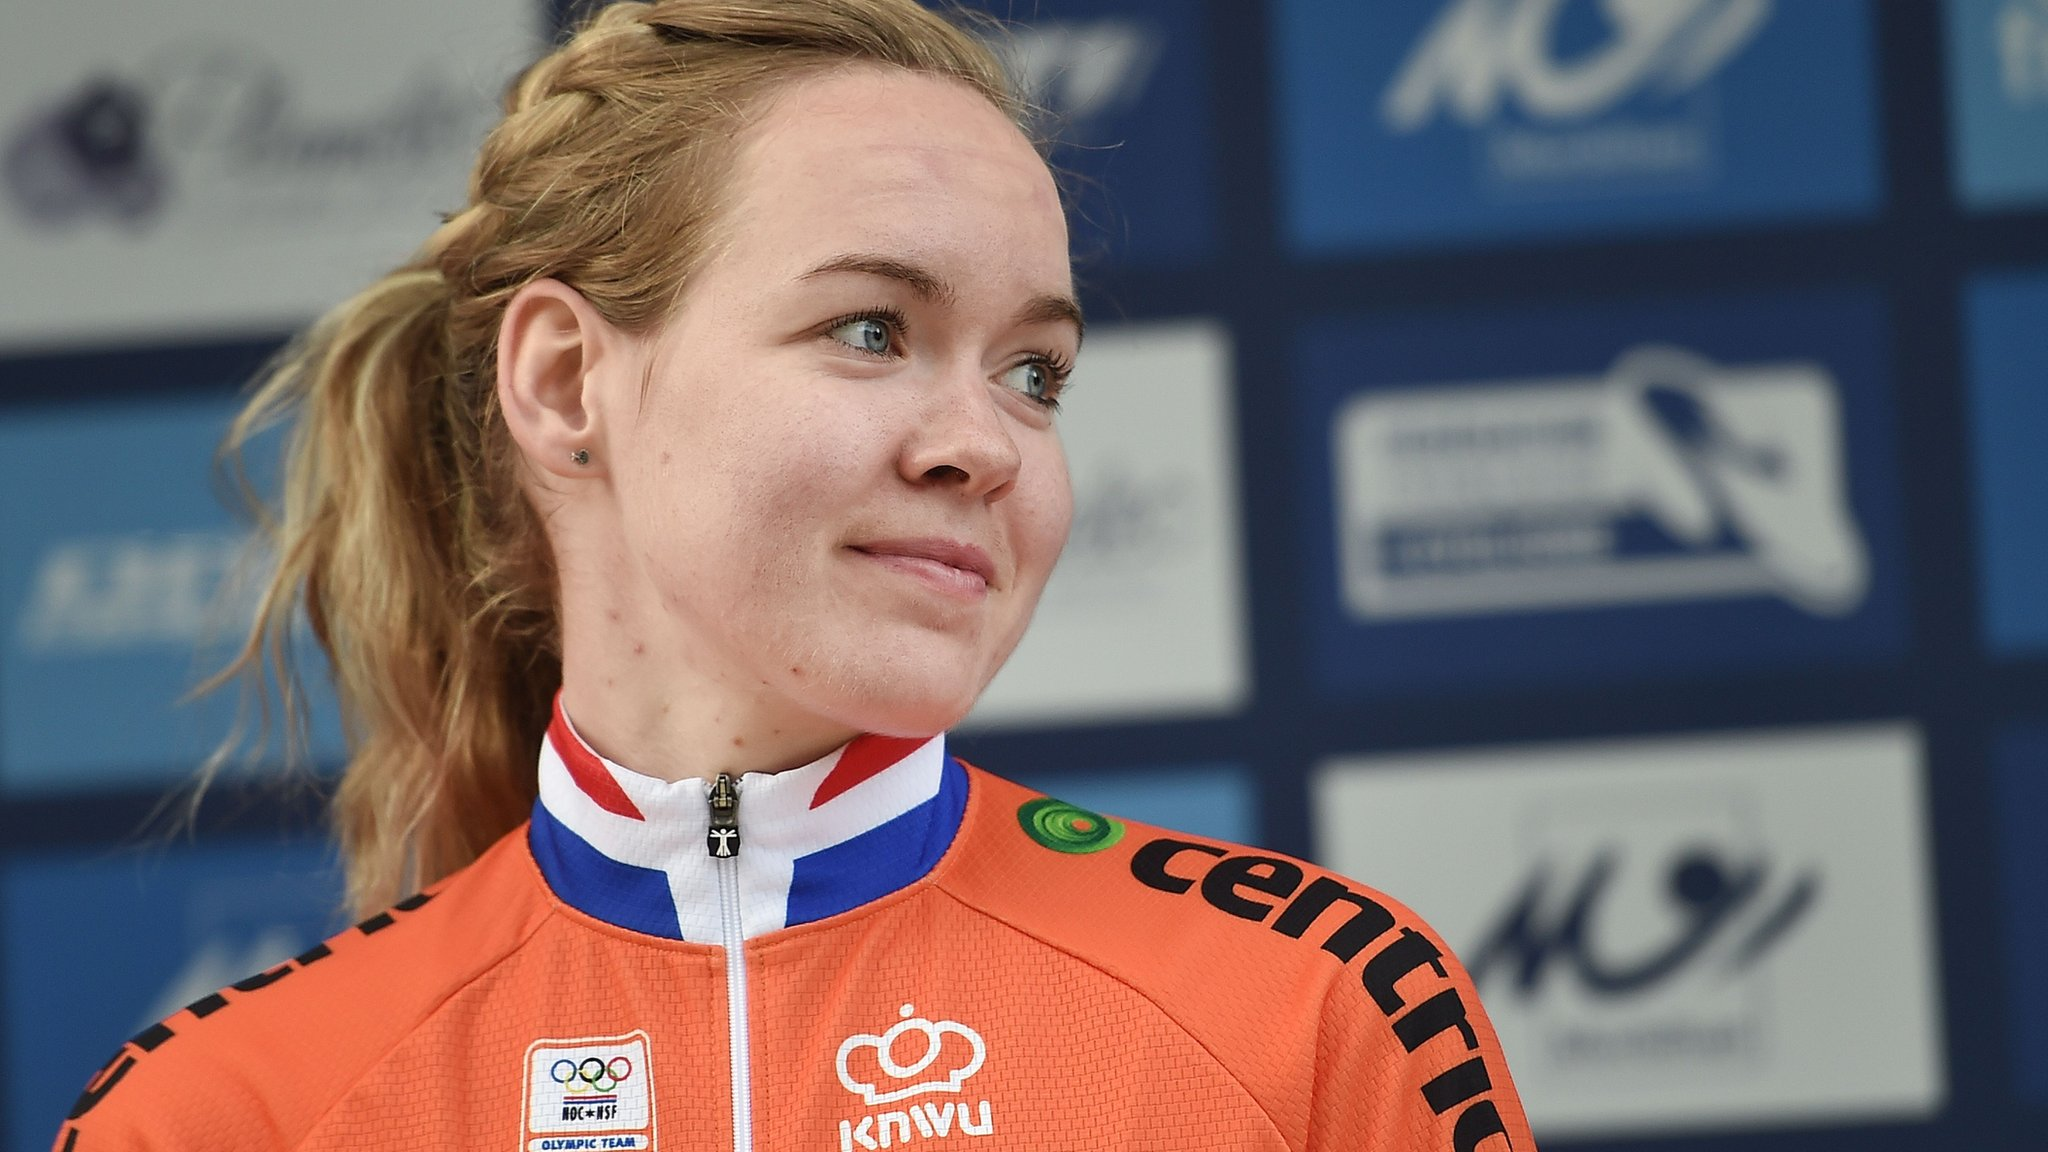 Van der Breggen to race in Yorkshire de Yorkshire